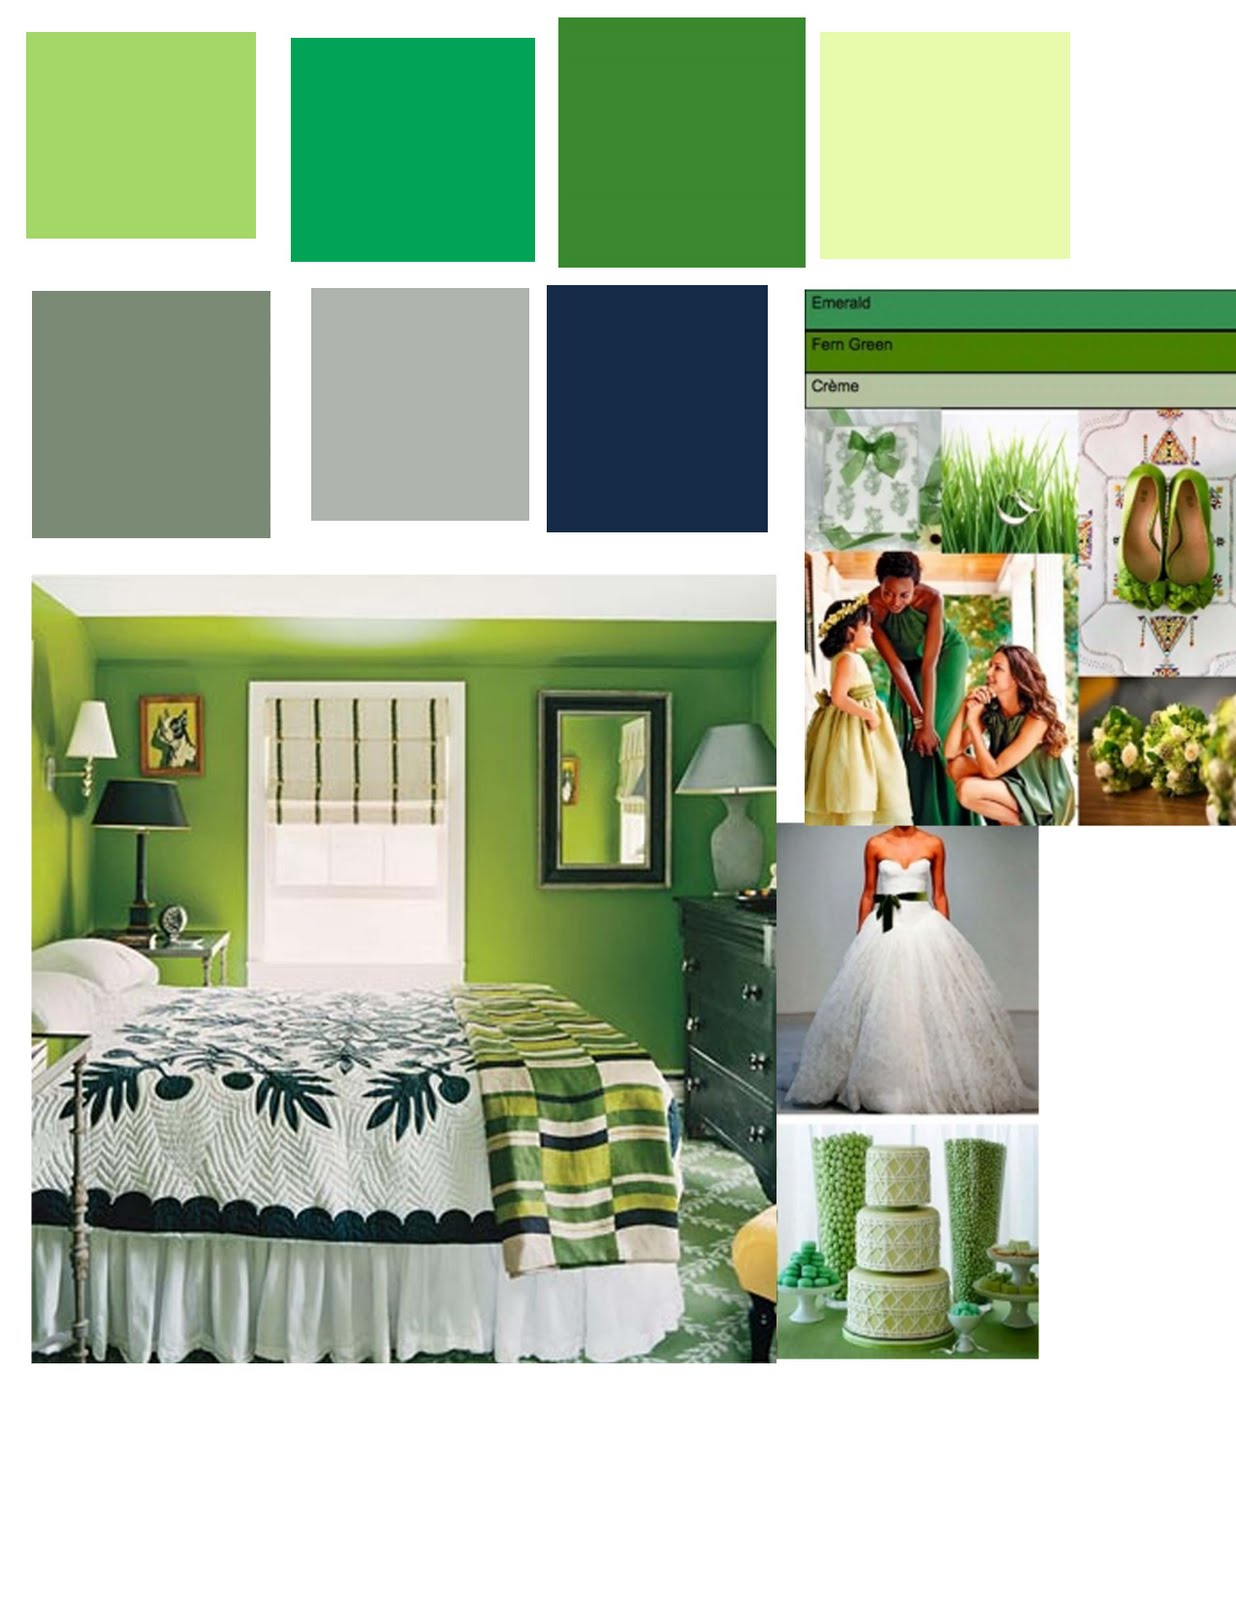 http://2.bp.blogspot.com/_KKkam2trYlU/TEaDGdhIhQI/AAAAAAAAAA8/CdeQyUS8U1A/s1600/green%20grey%20and%20navy%20color%20scheme%20copy.jpg